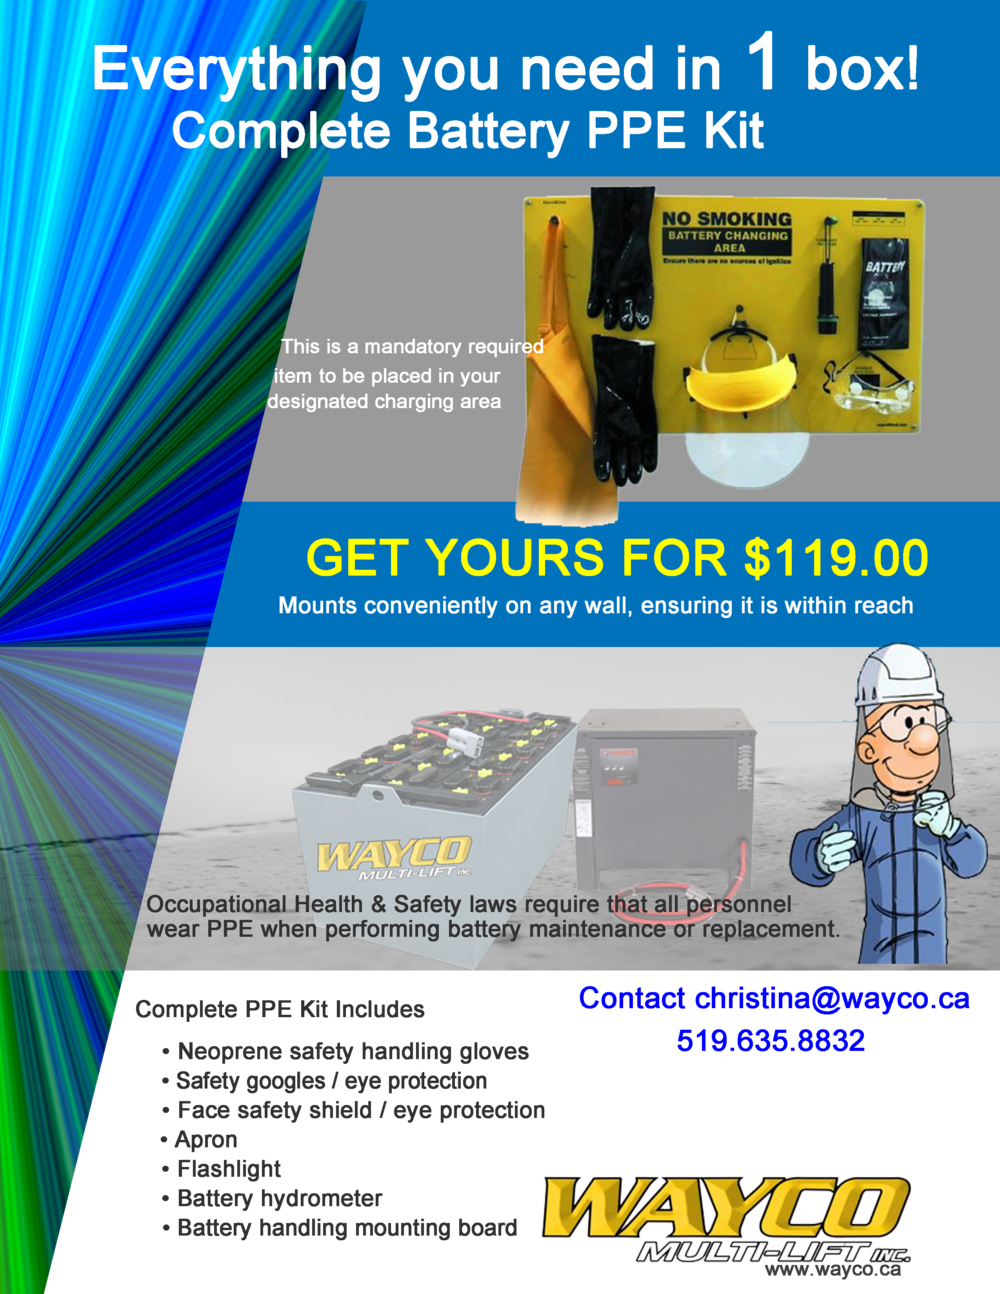 Battery-PPE-Kit-Flyer-jpg.png